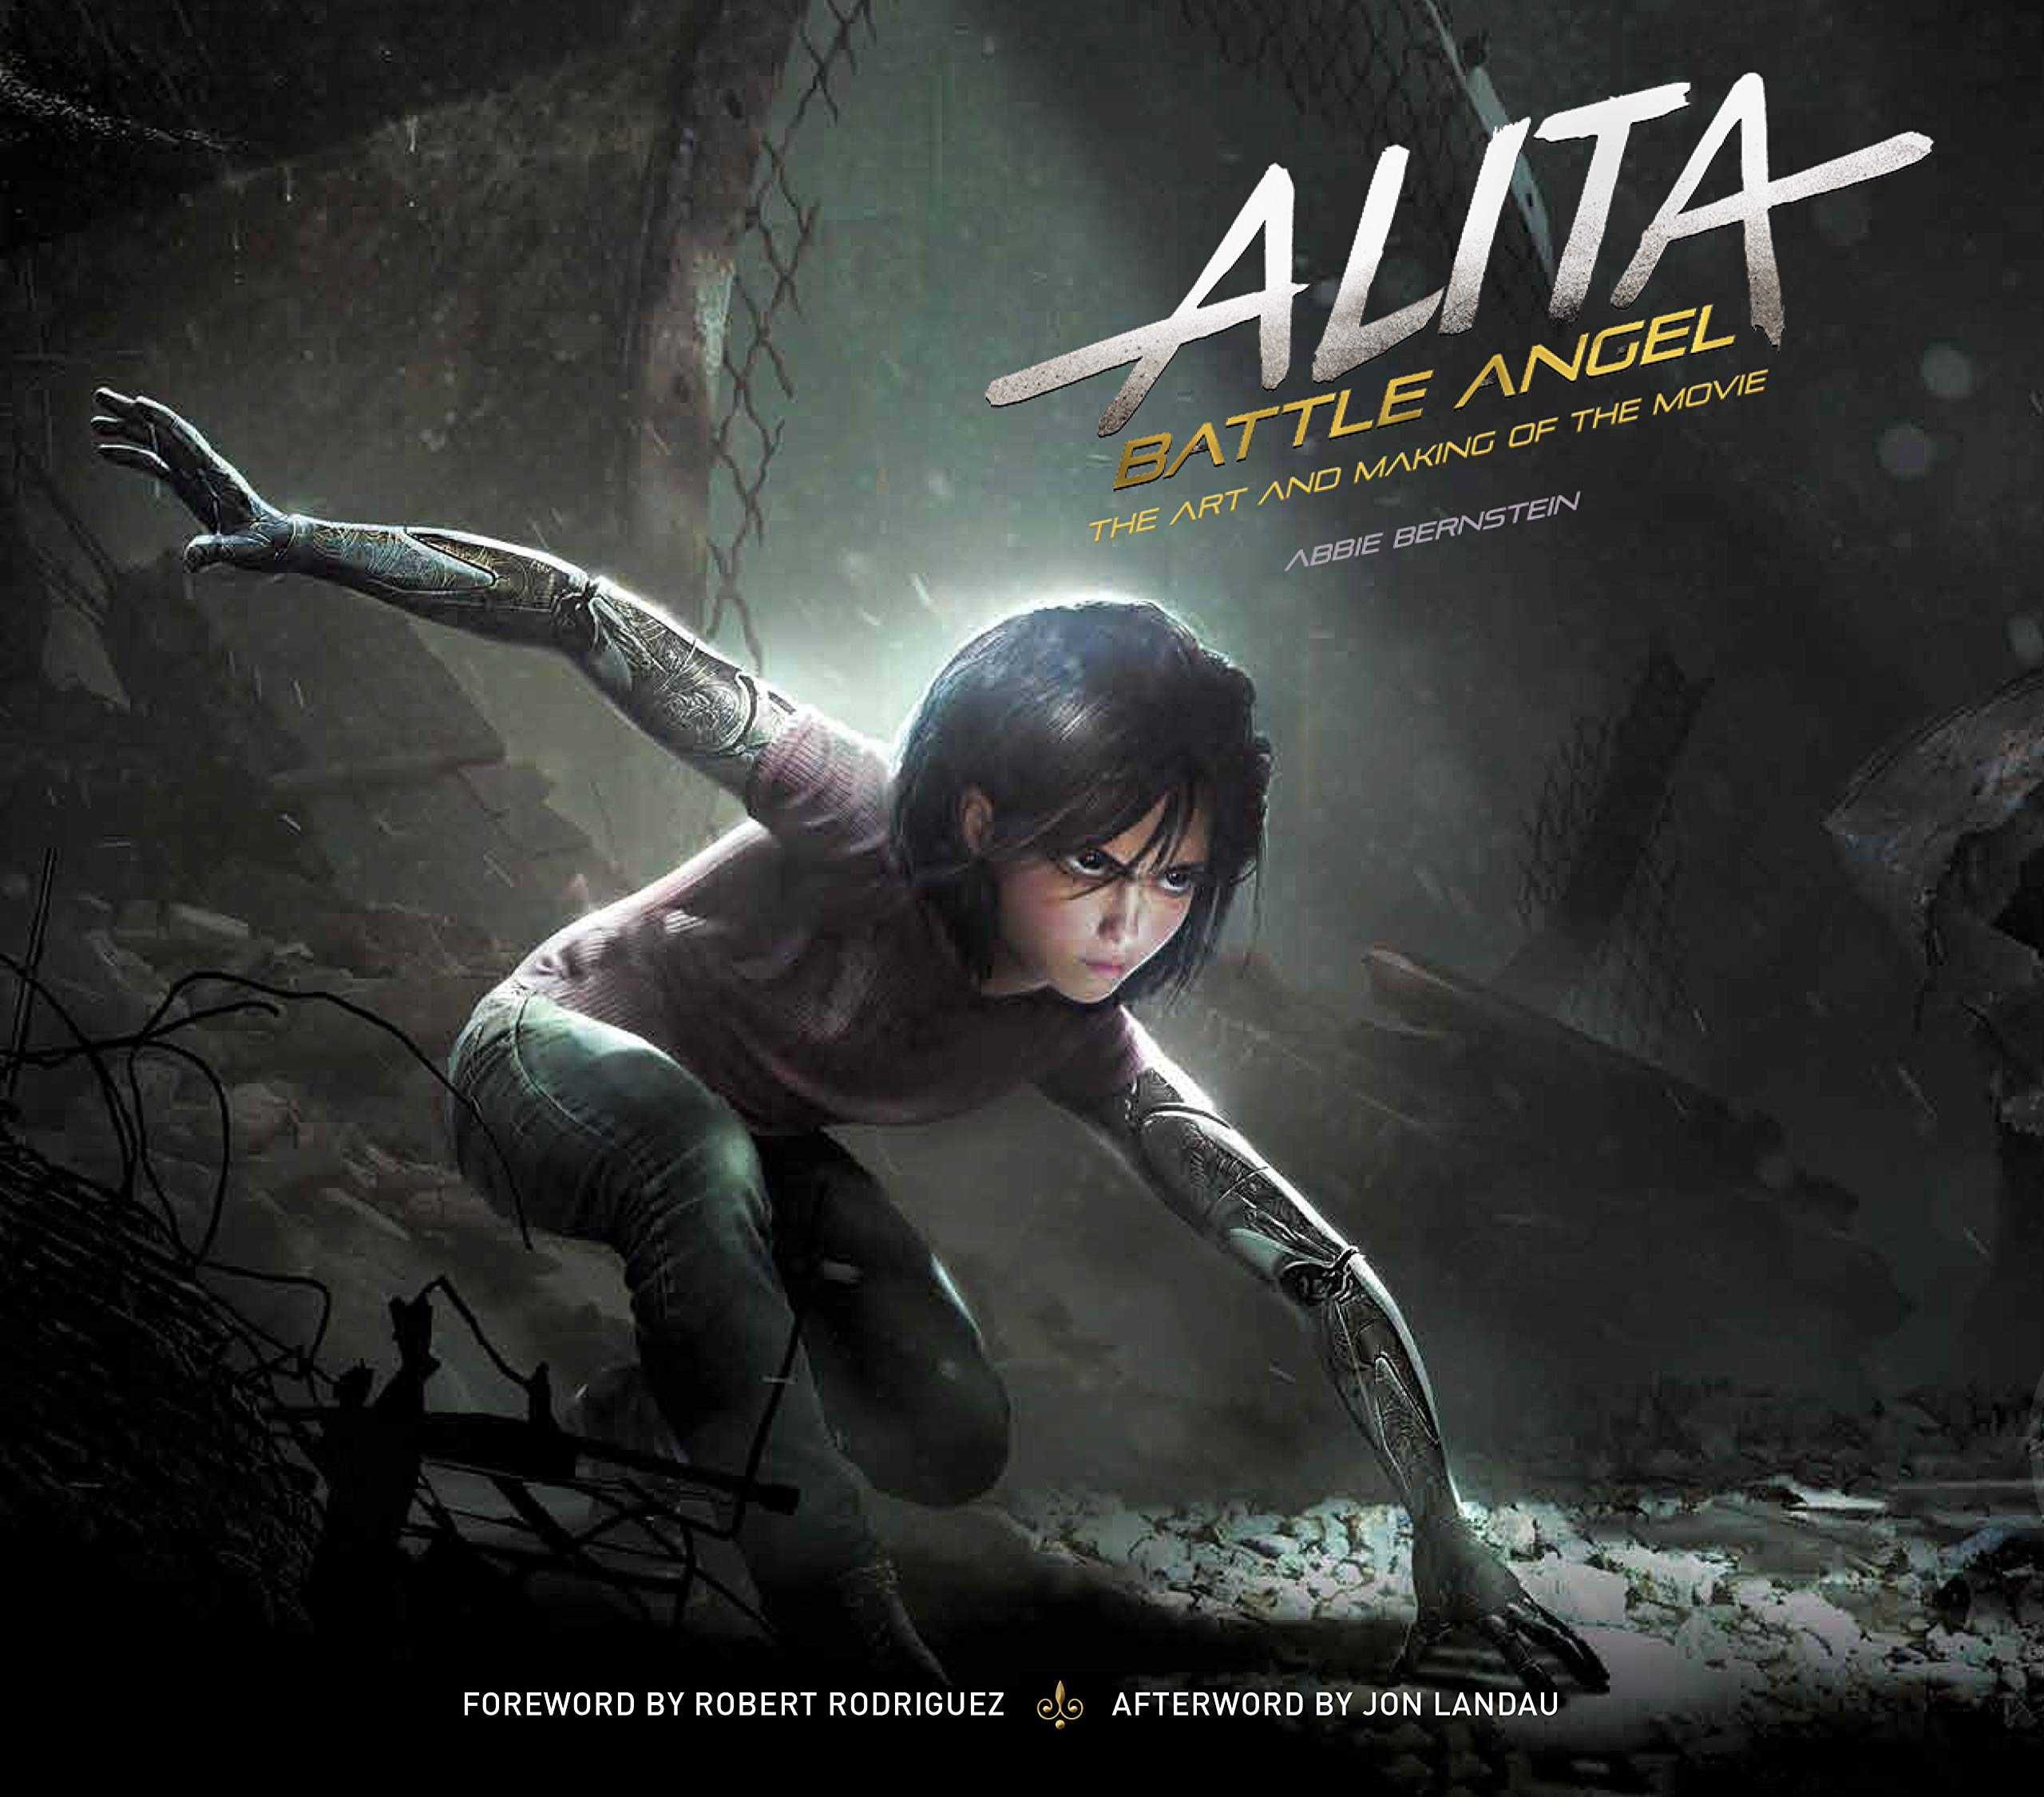 Alita: Battle Angel - The Art and Making of the Movie Book